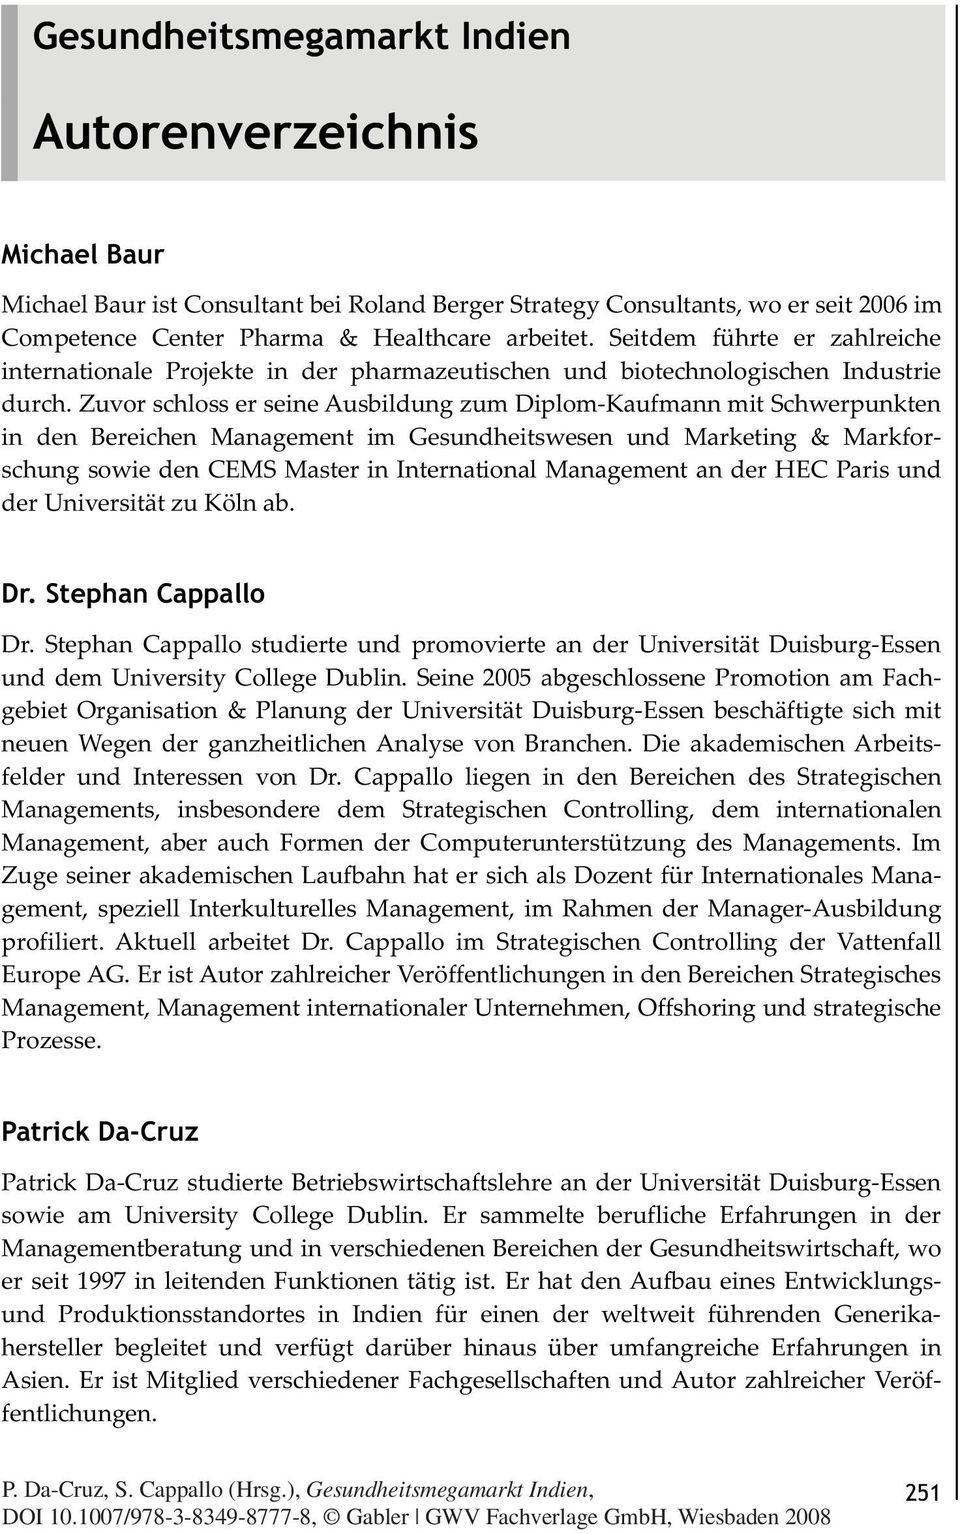 Zuvor schloss er seine Ausbildung zum Diplom-Kaufmann mit Schwerpunkten in den Bereichen Management im Gesundheitswesen und Marketing & Markforschung sowie den CEMS Master in International Management